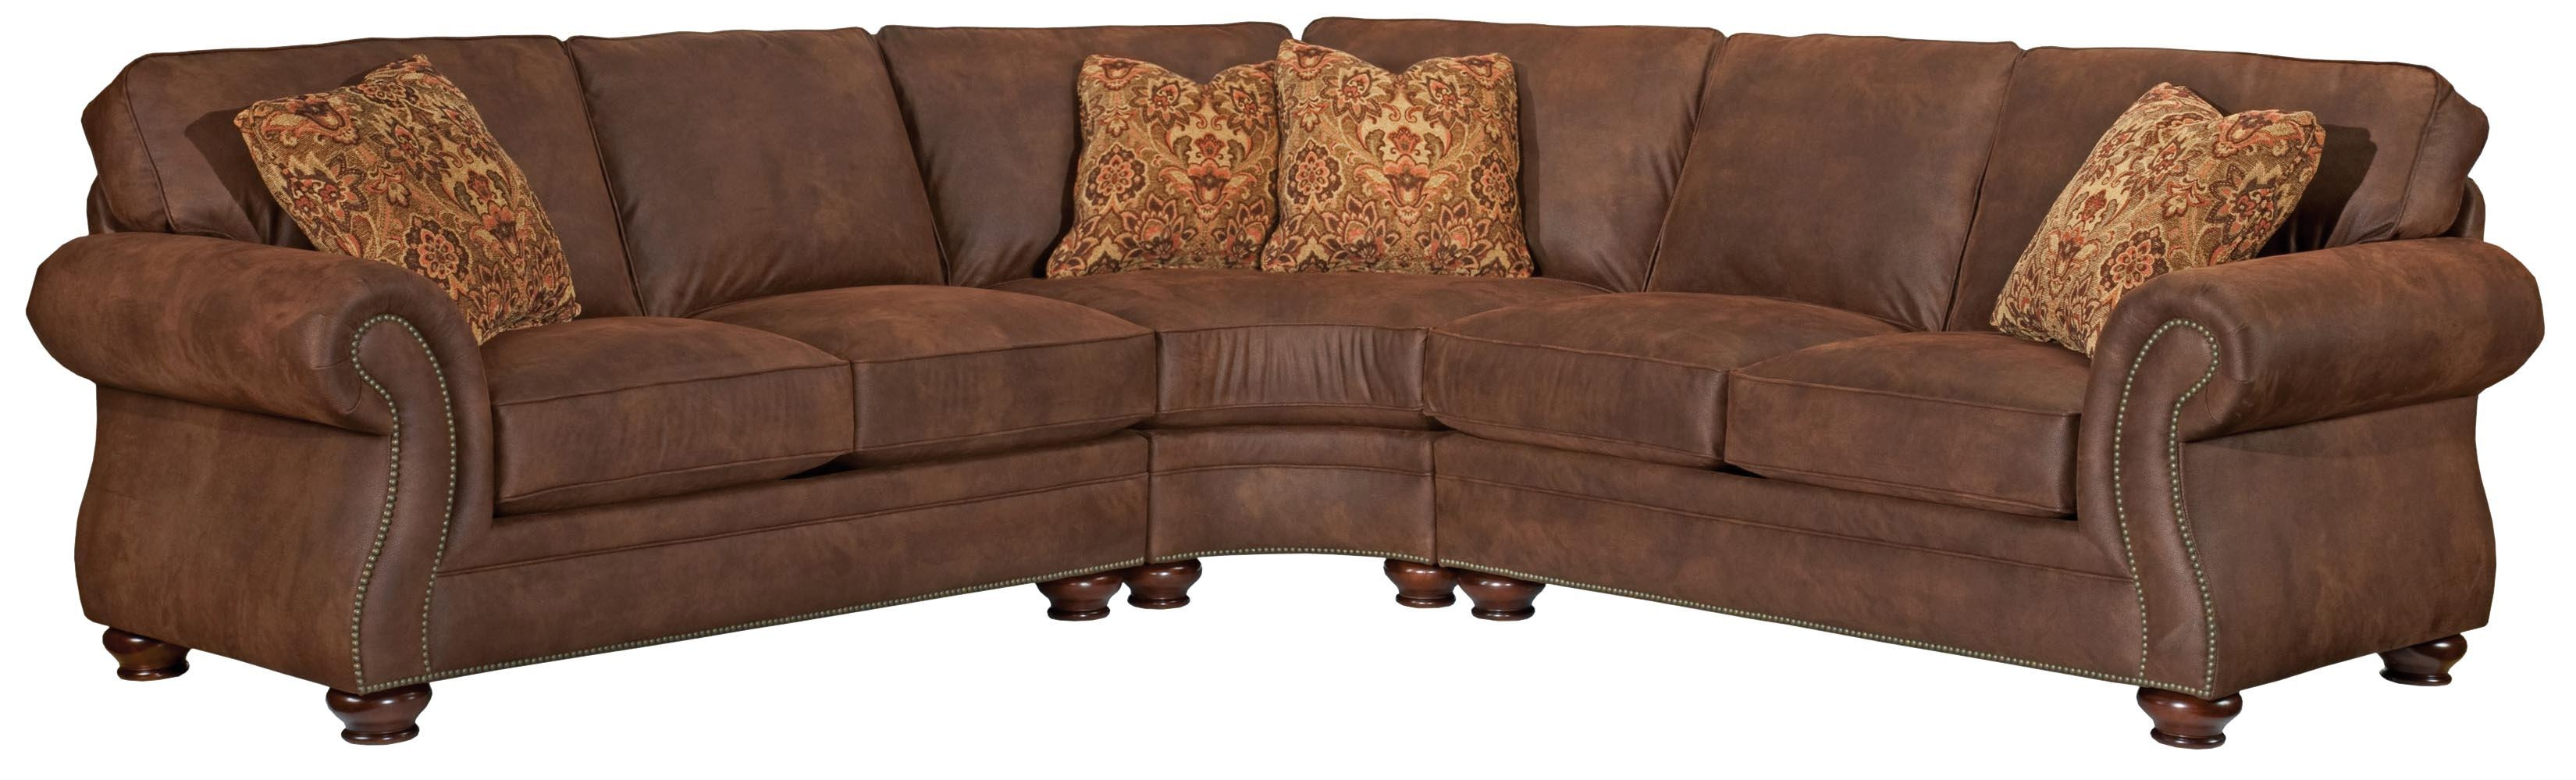 Broyhill Furniture Laramie 3 Piece Wedge Sectional Sofa – Wayside In Broyhill Reclining Sofas (View 2 of 20)